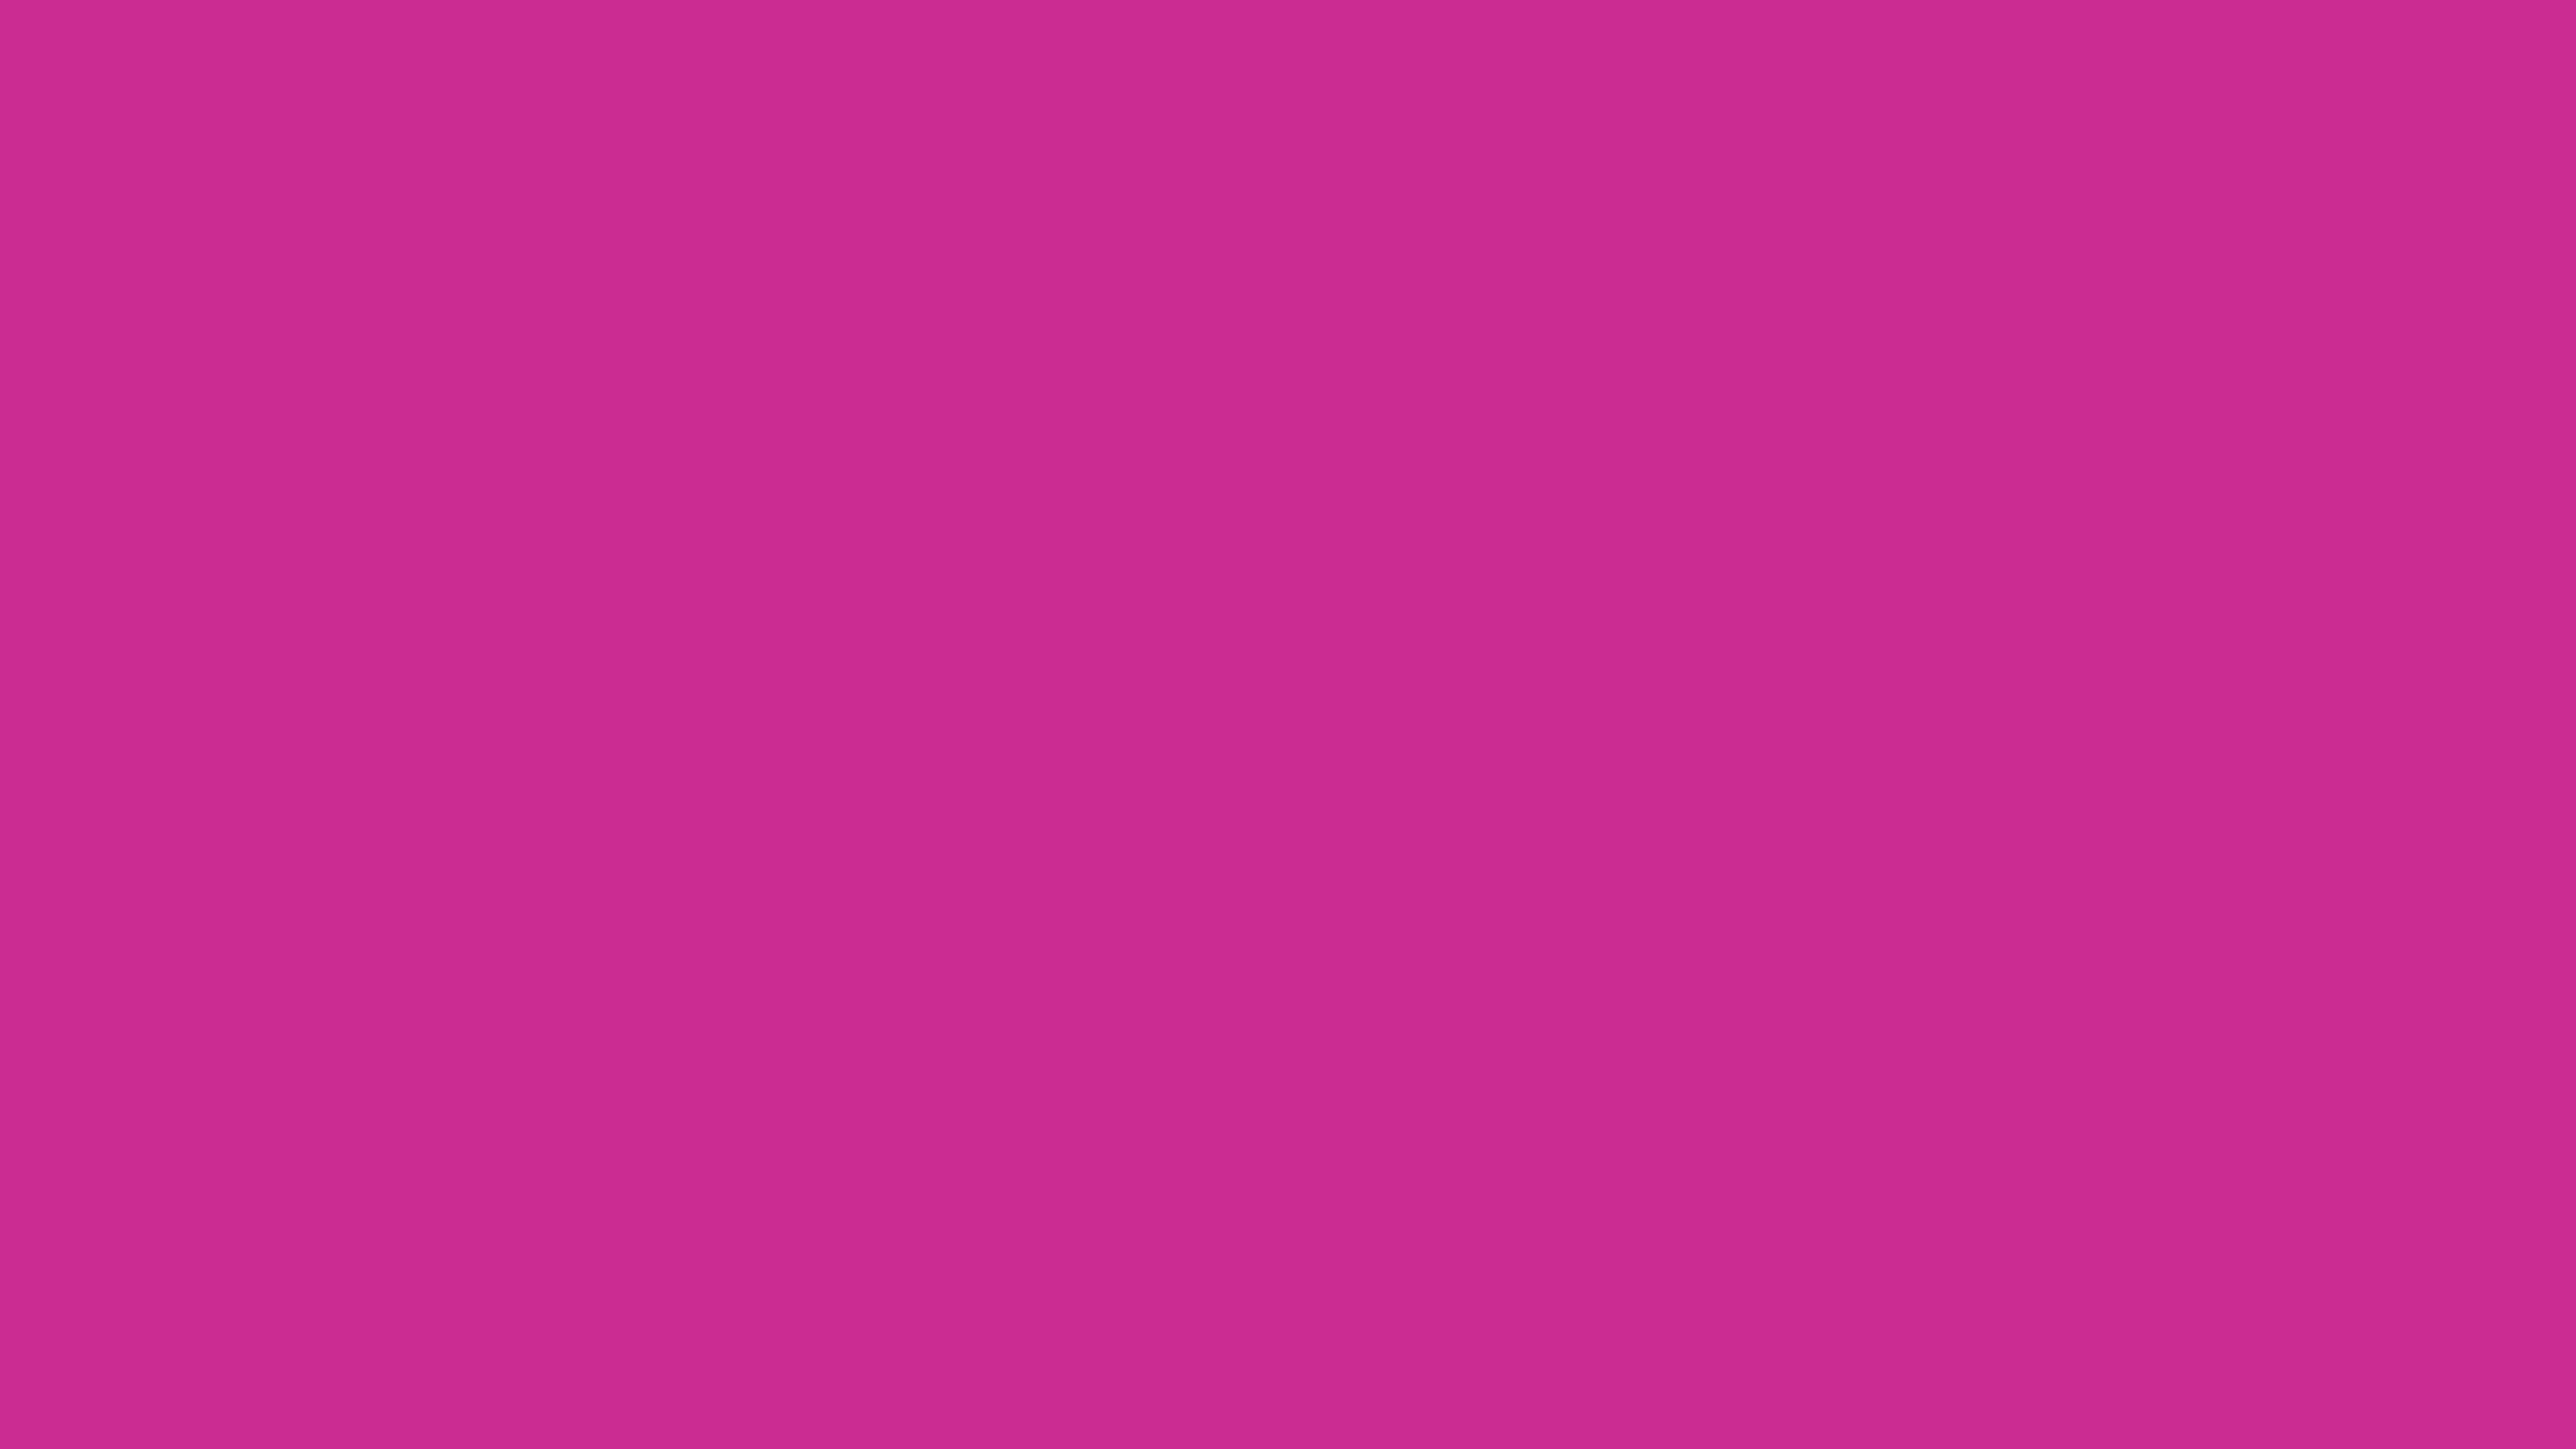 4096x2304 Royal Fuchsia Solid Color Background